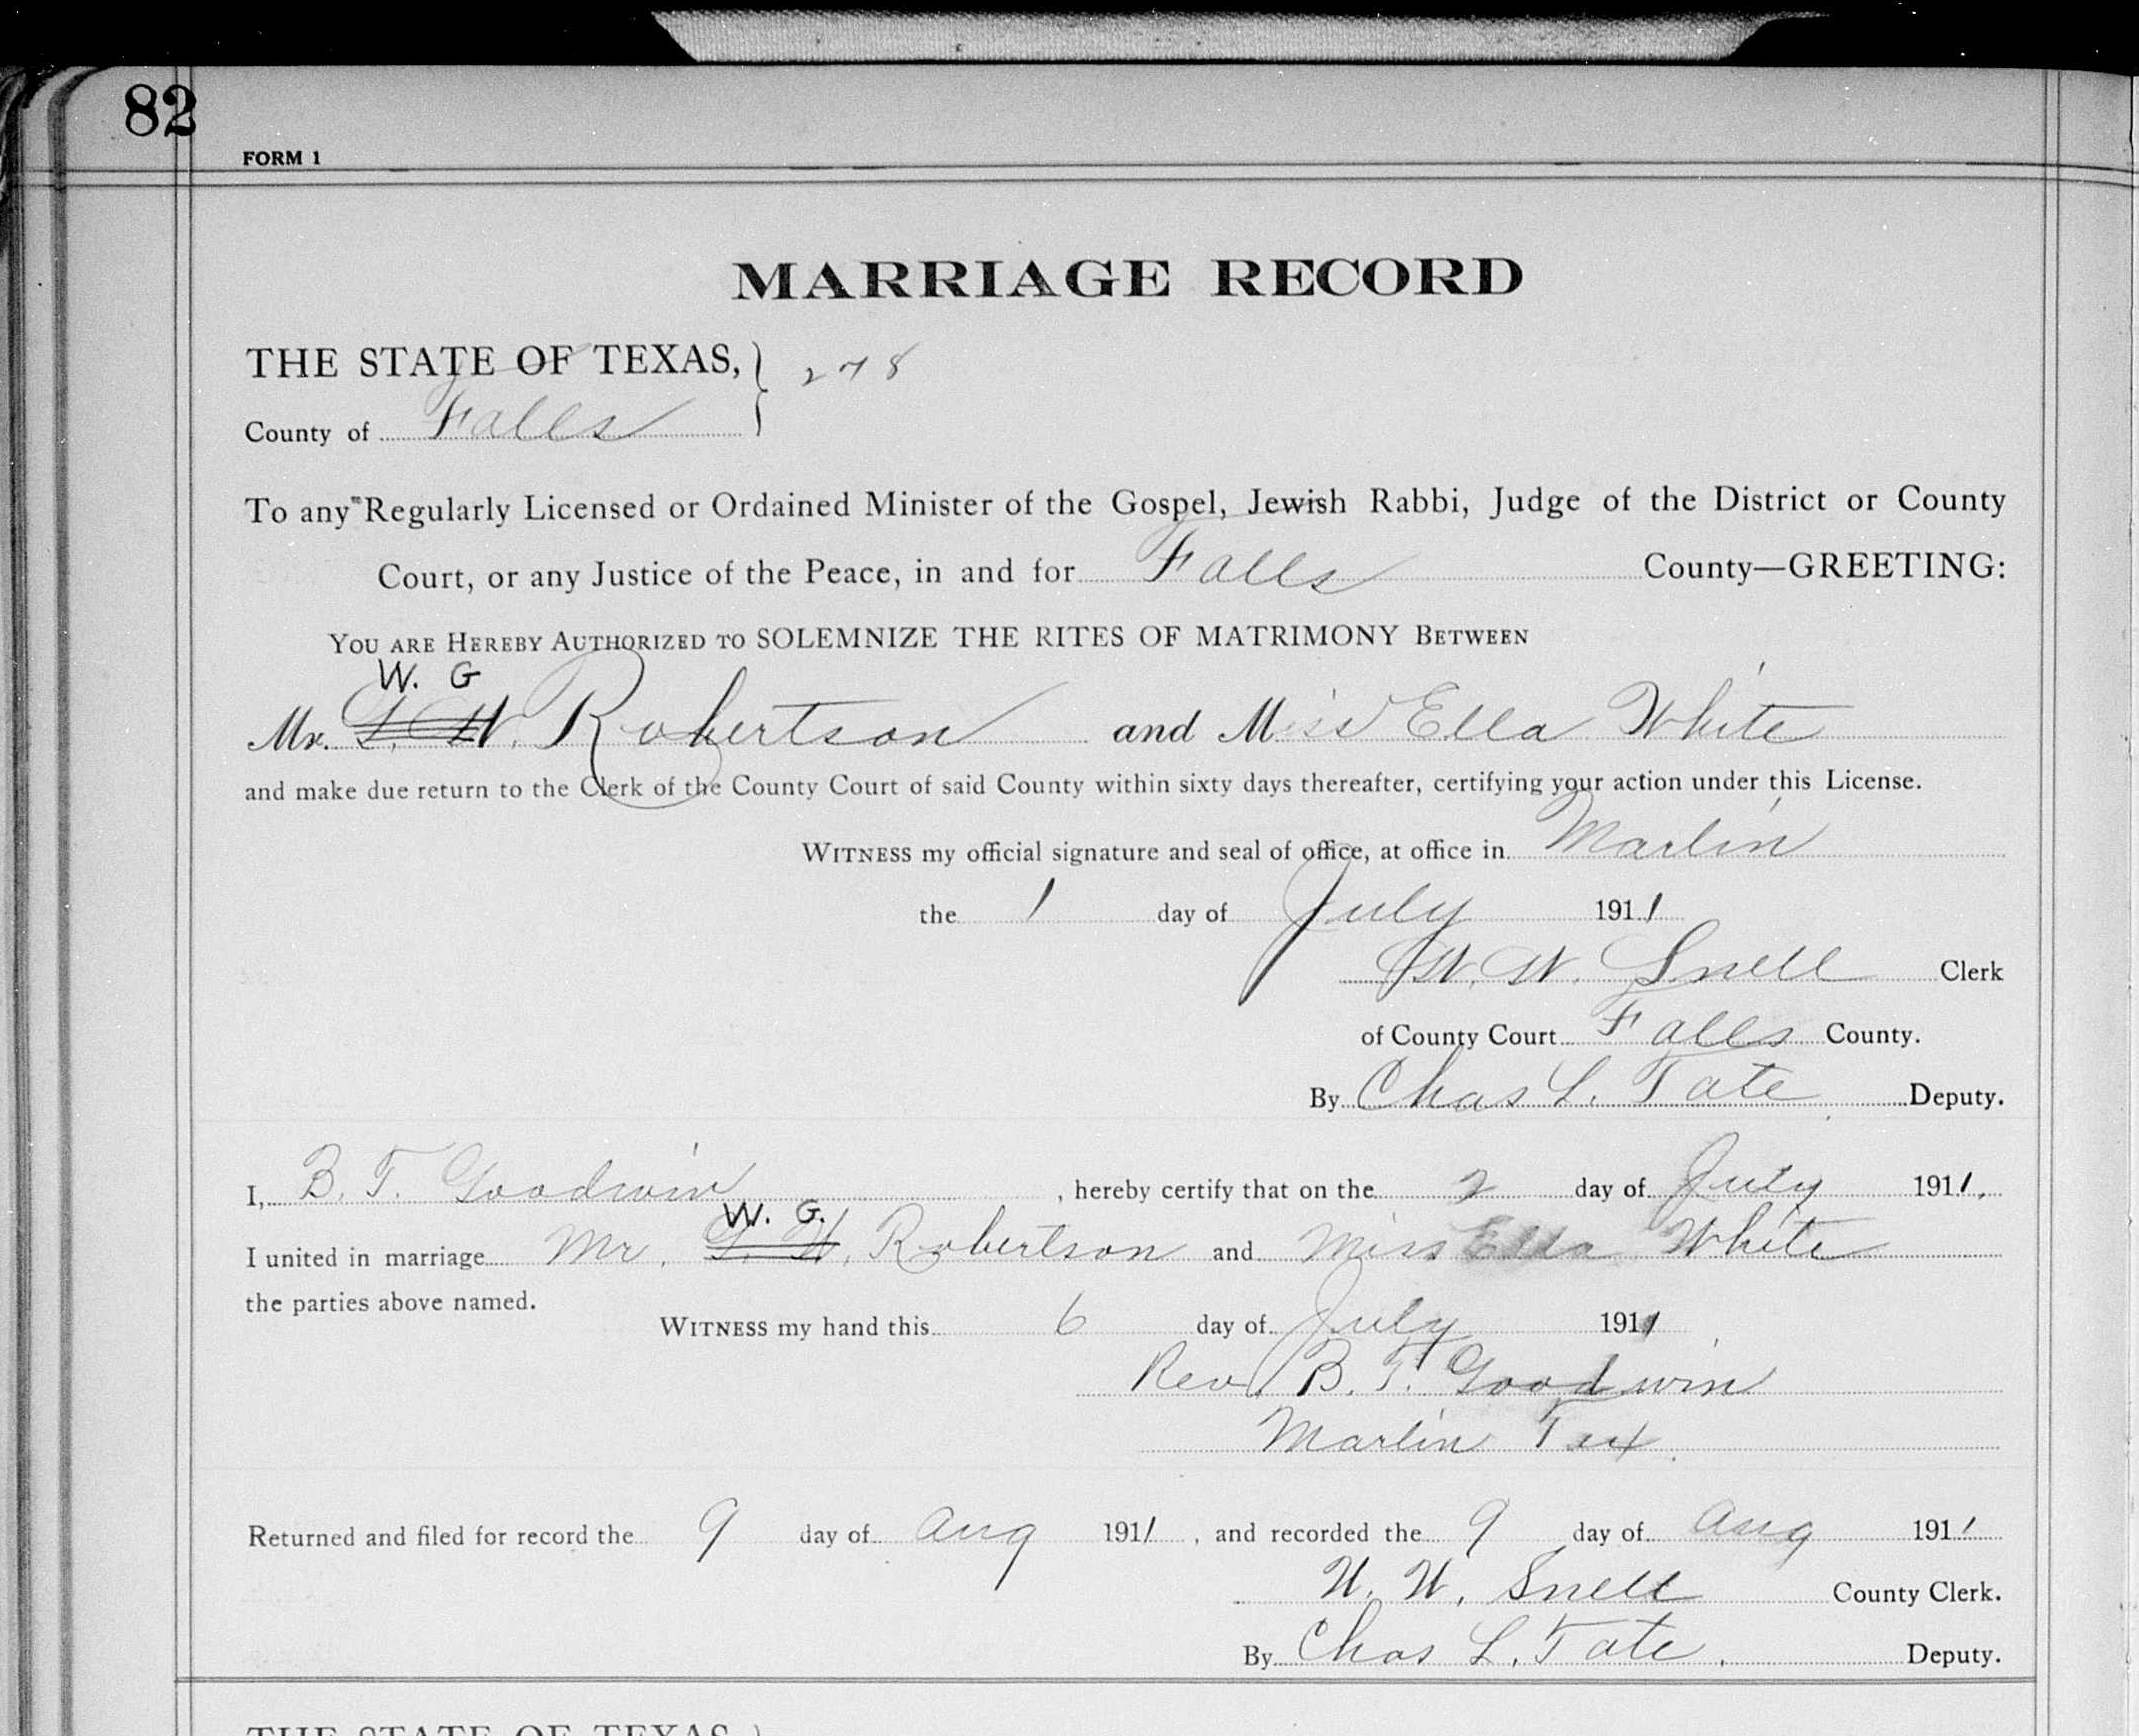 Ellen bethine stewart marriages and children marriage license for ella white and w g robertson 1betcityfo Image collections